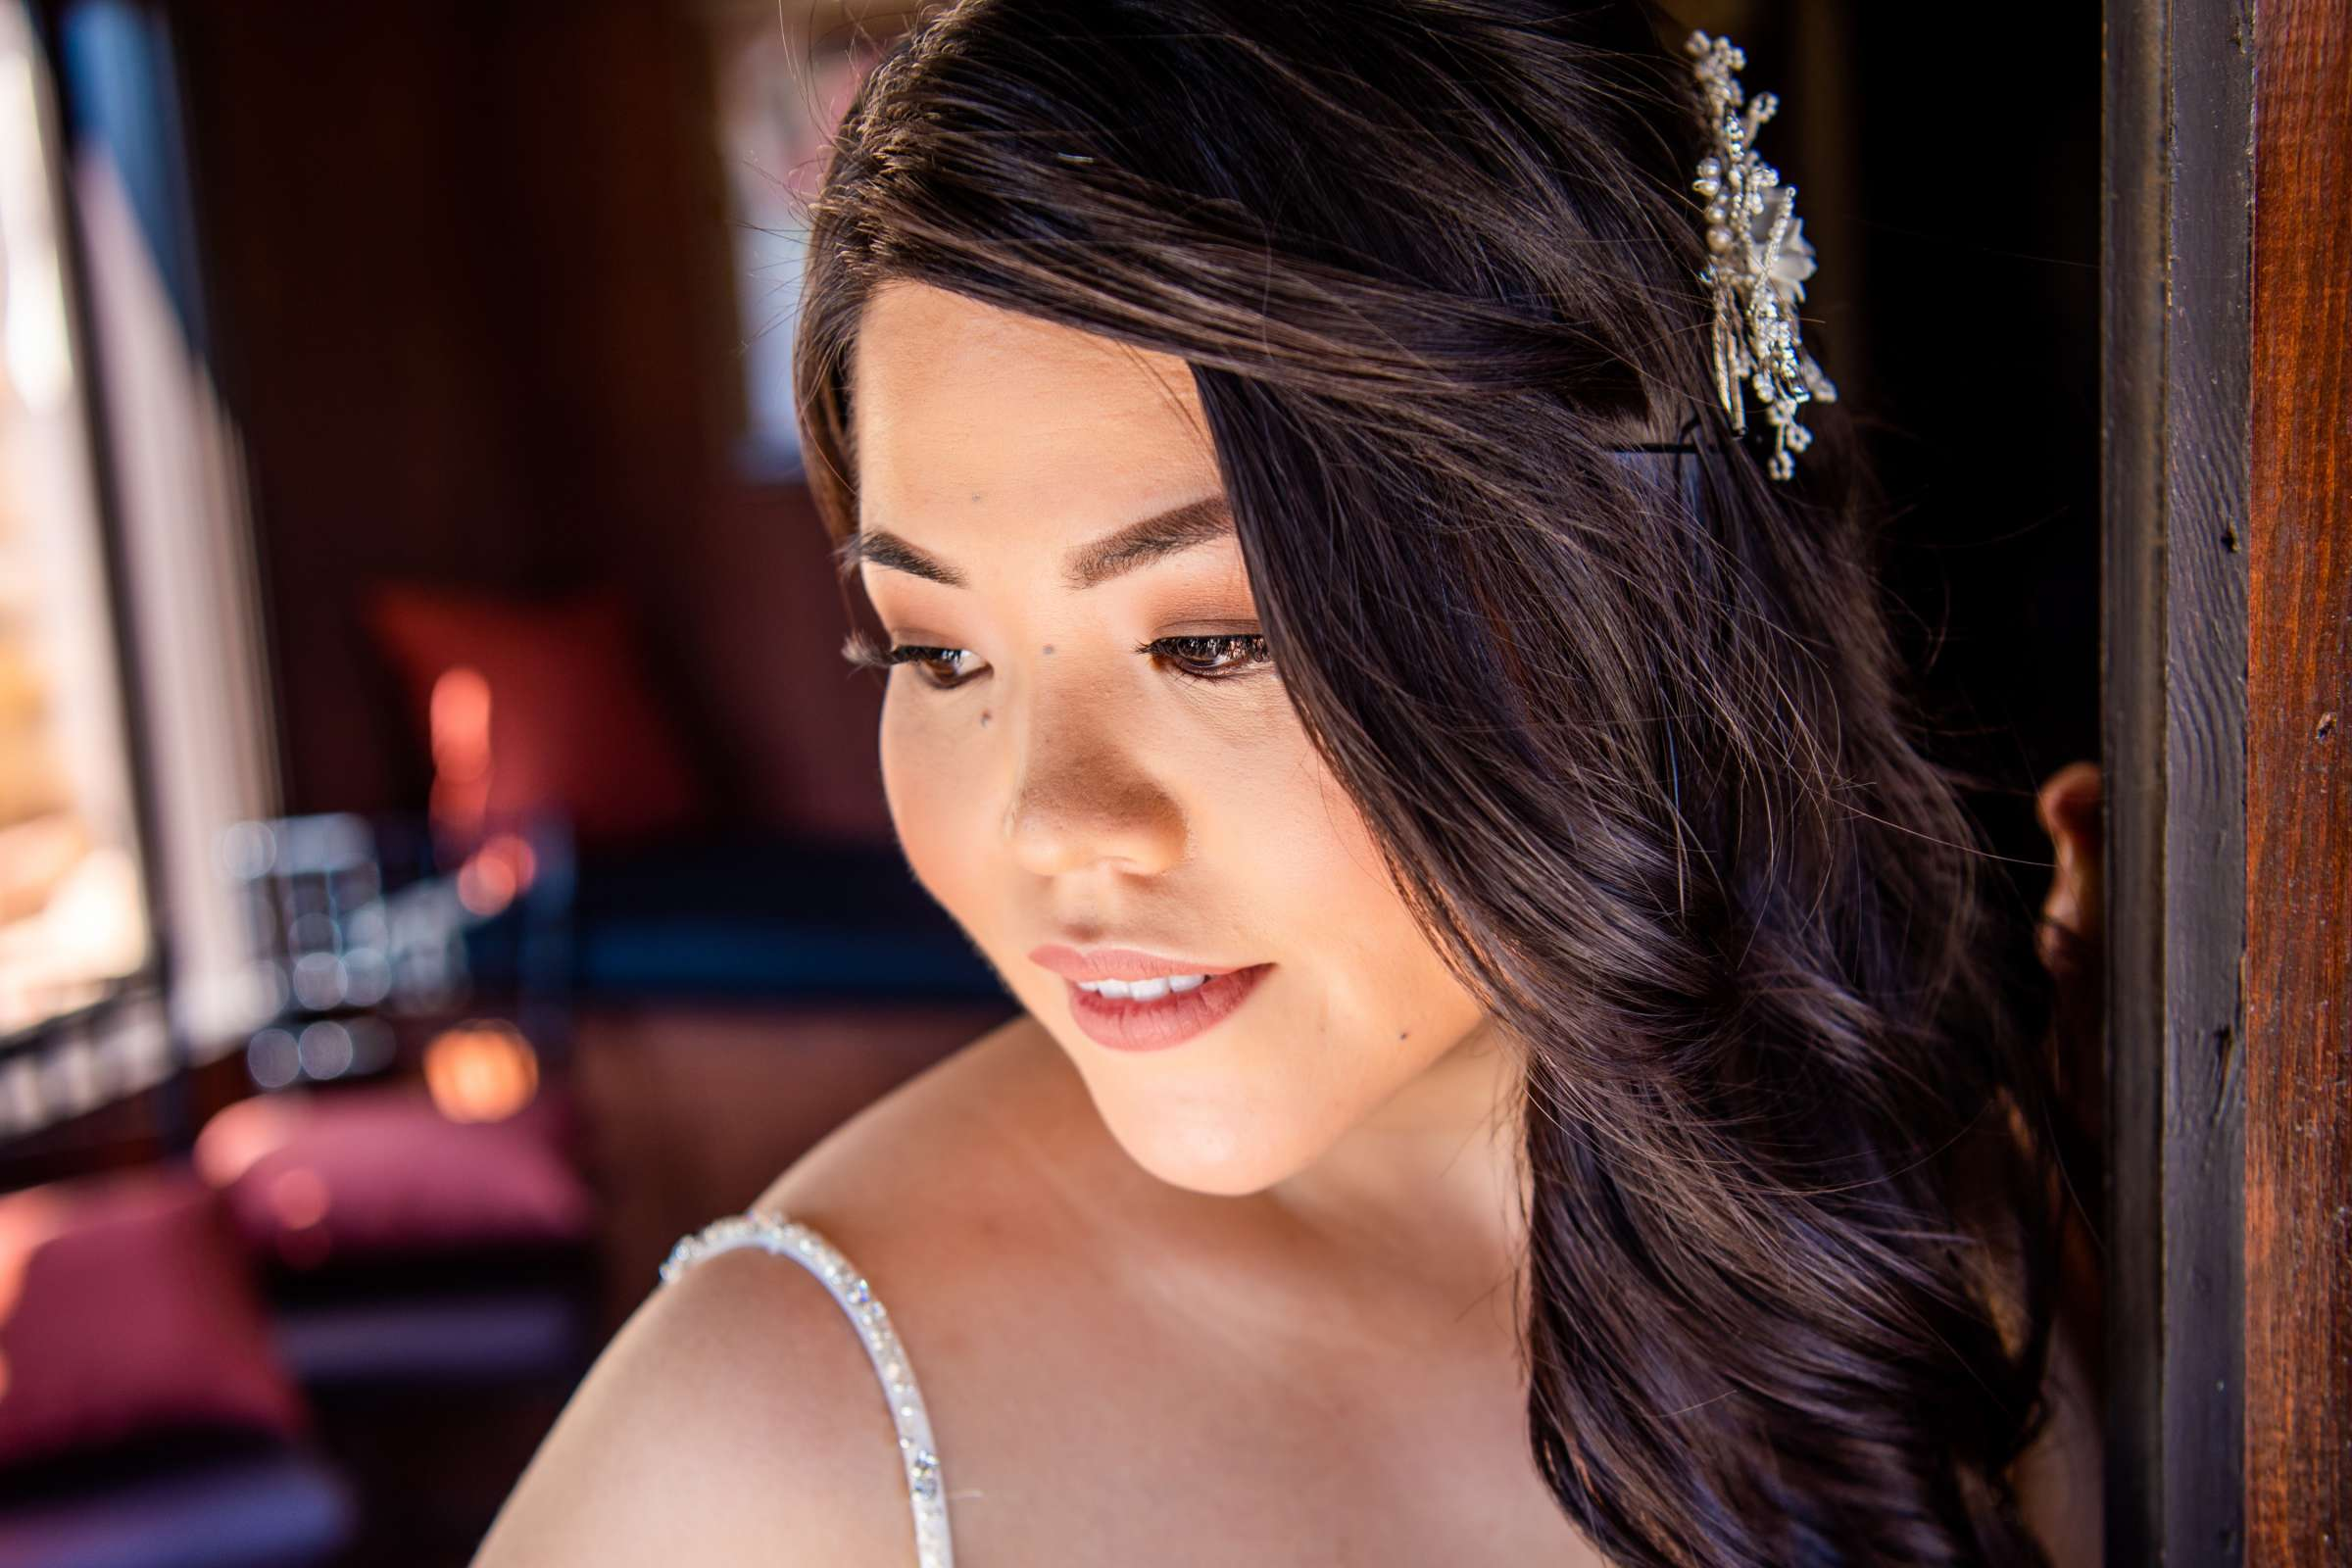 Mt Woodson Castle Wedding coordinated by I Do Weddings, Aya and Jared Wedding Photo #486888 by True Photography